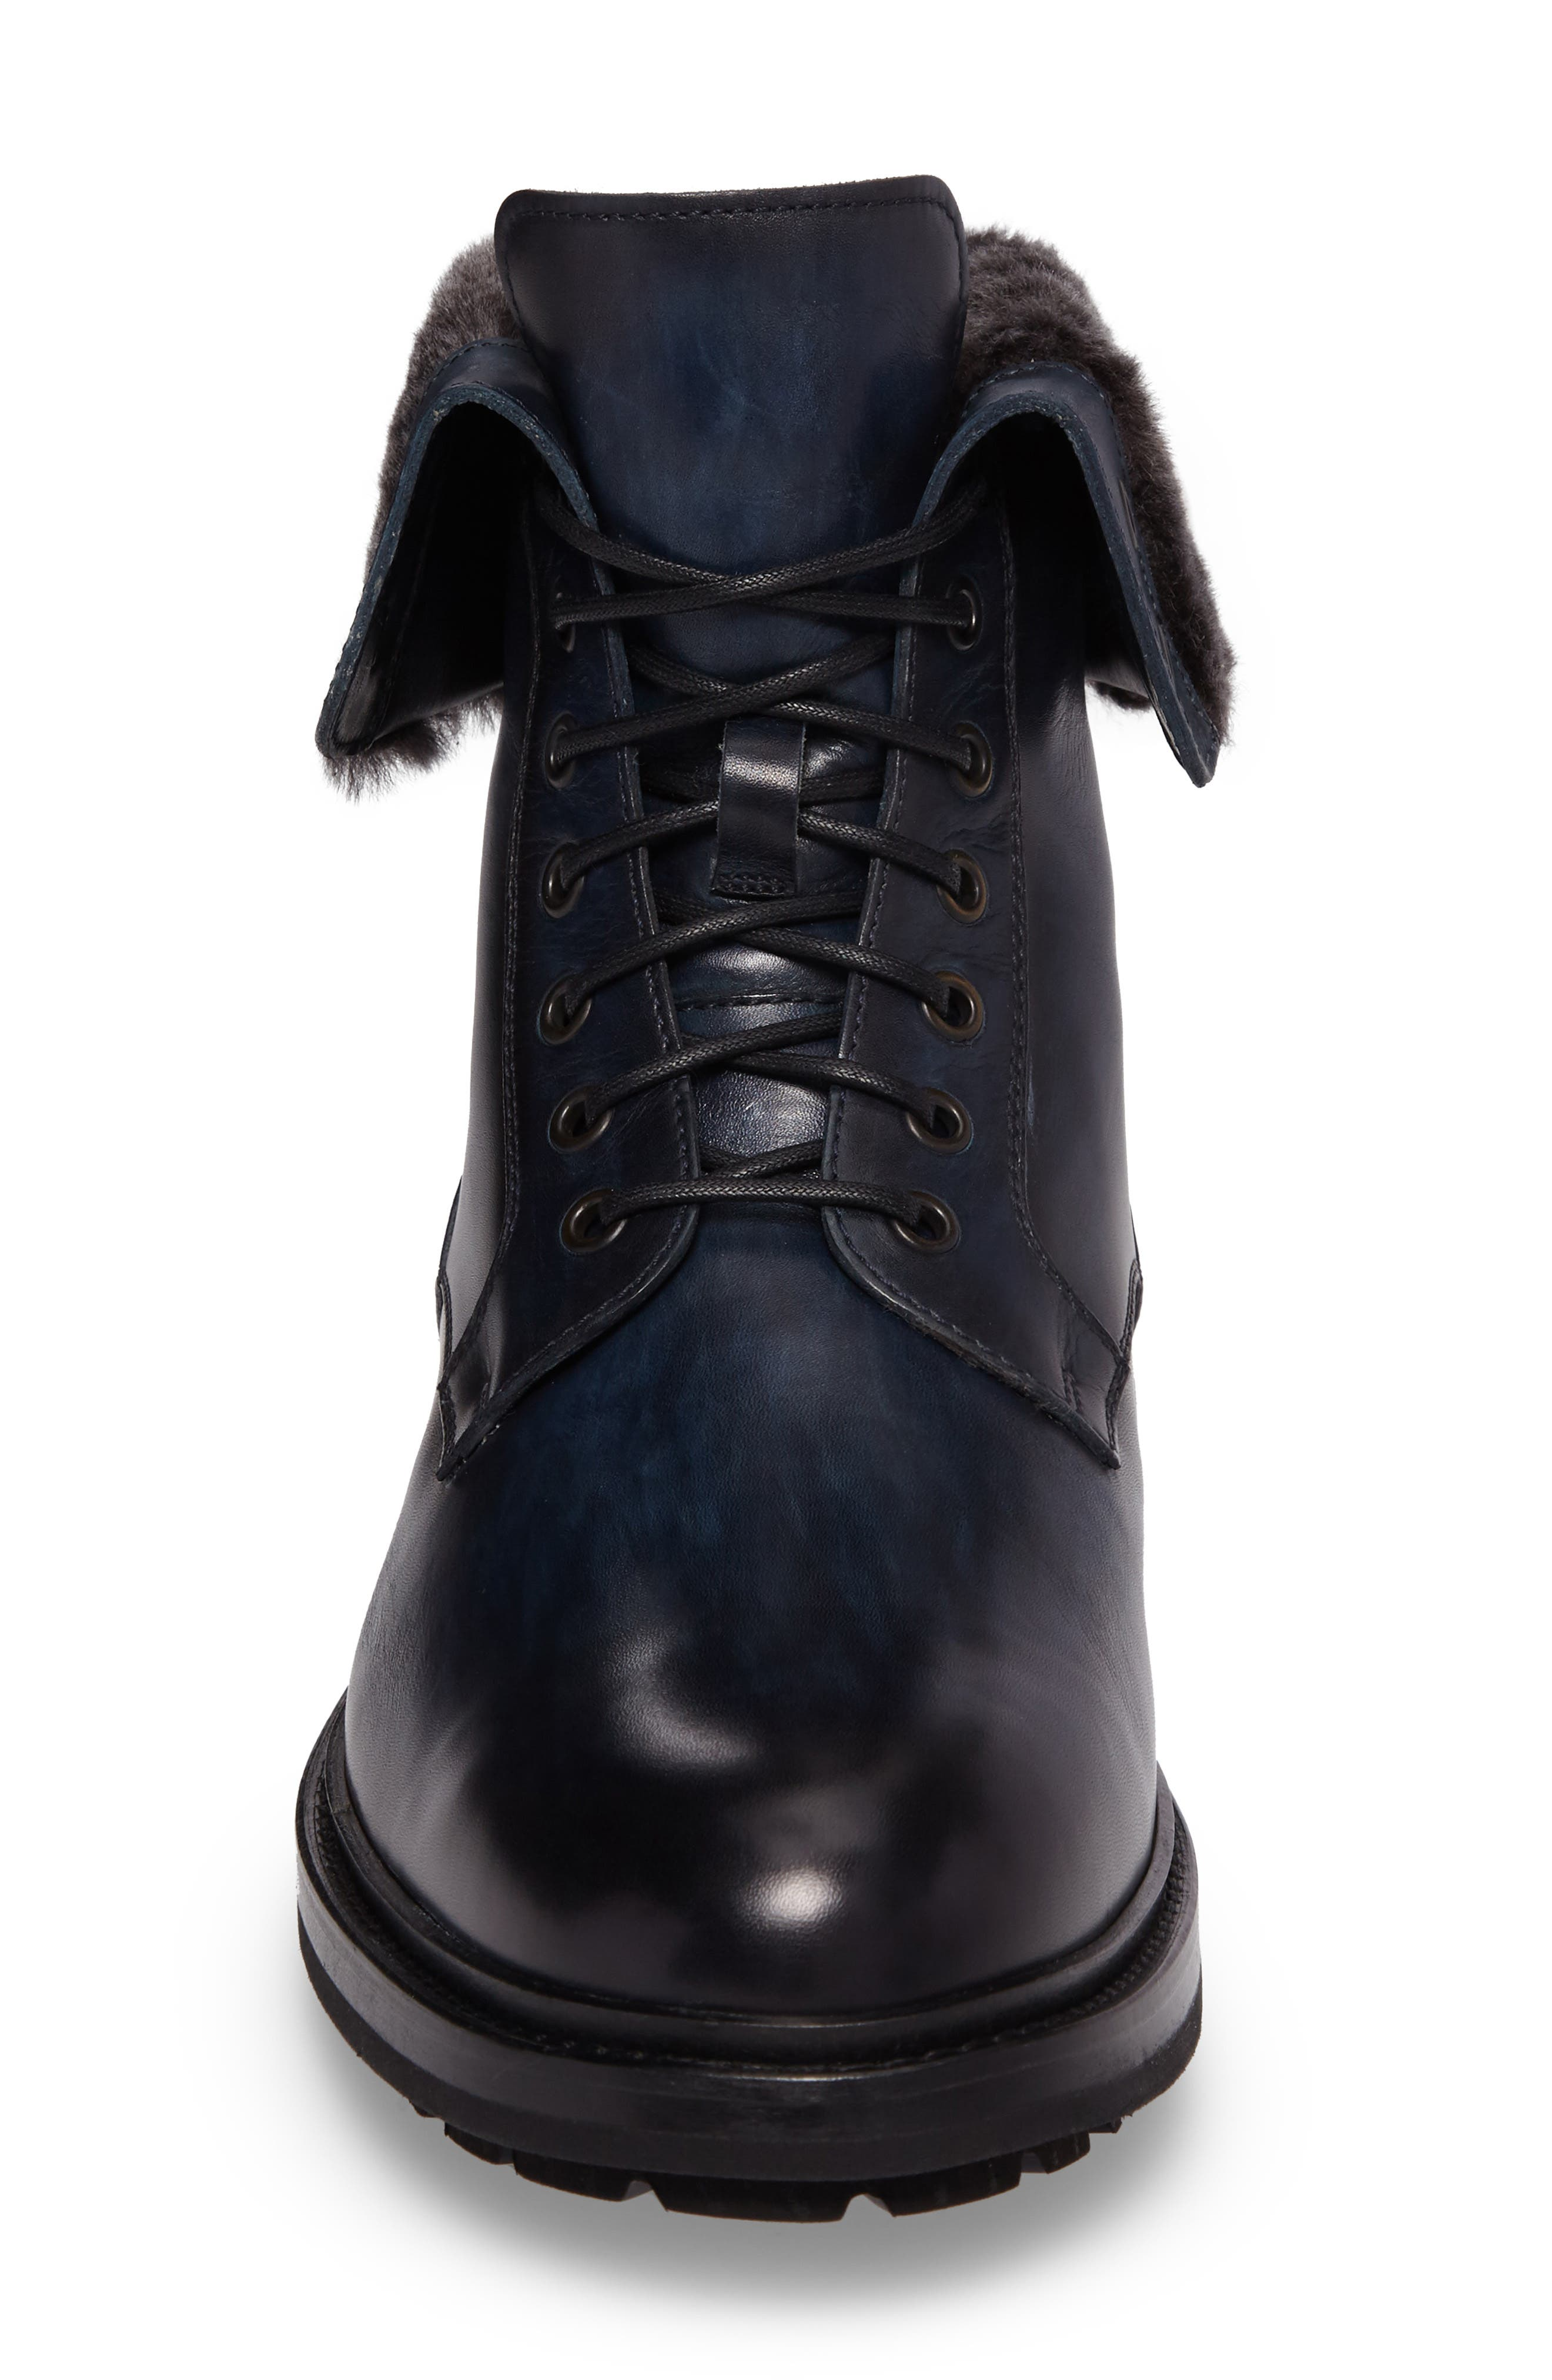 Paxton Plain Toe Boot with Genuine Rabbit Fur Cuff,                             Alternate thumbnail 4, color,                             Navy Leather